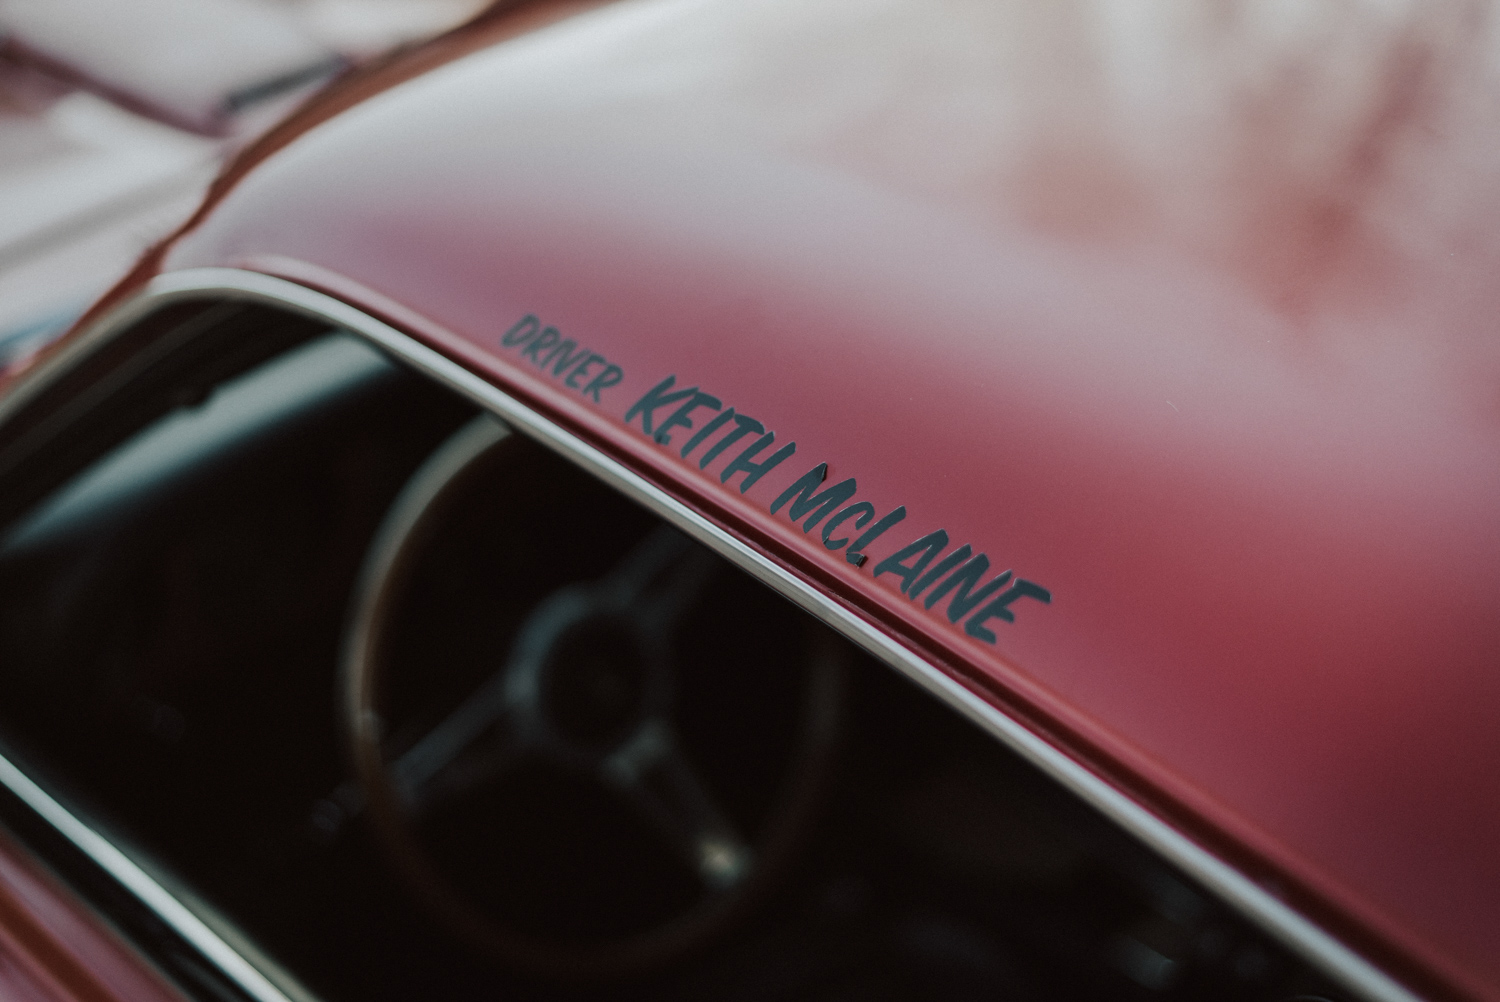 1969 Ford Mustang Mach 1 driver name